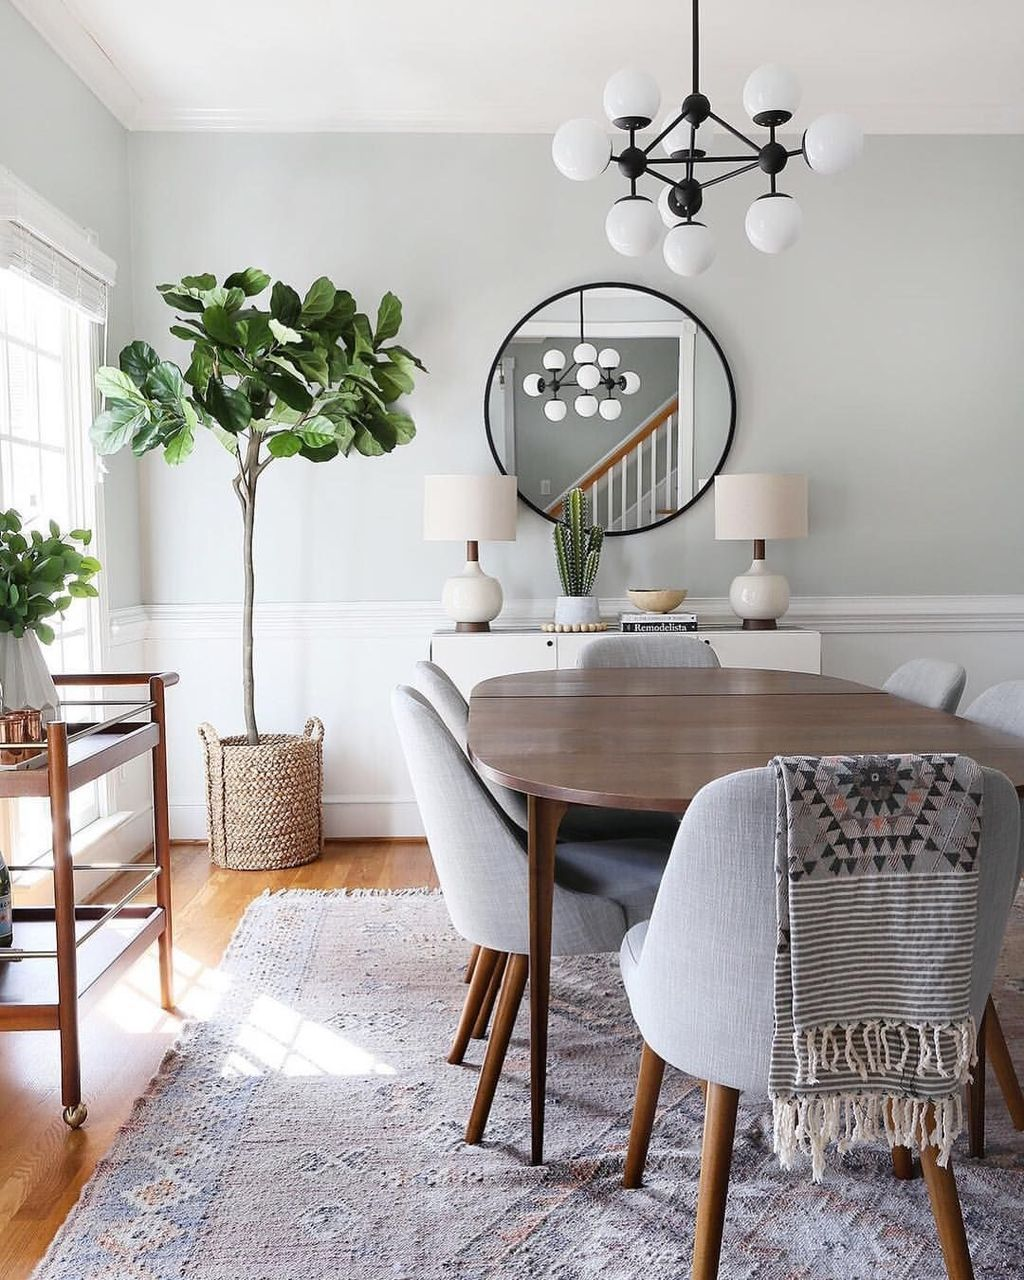 25 Awesome Traditional Dining Design Ideas: 39 Classy Traditional Dining Room Ideas That Looks